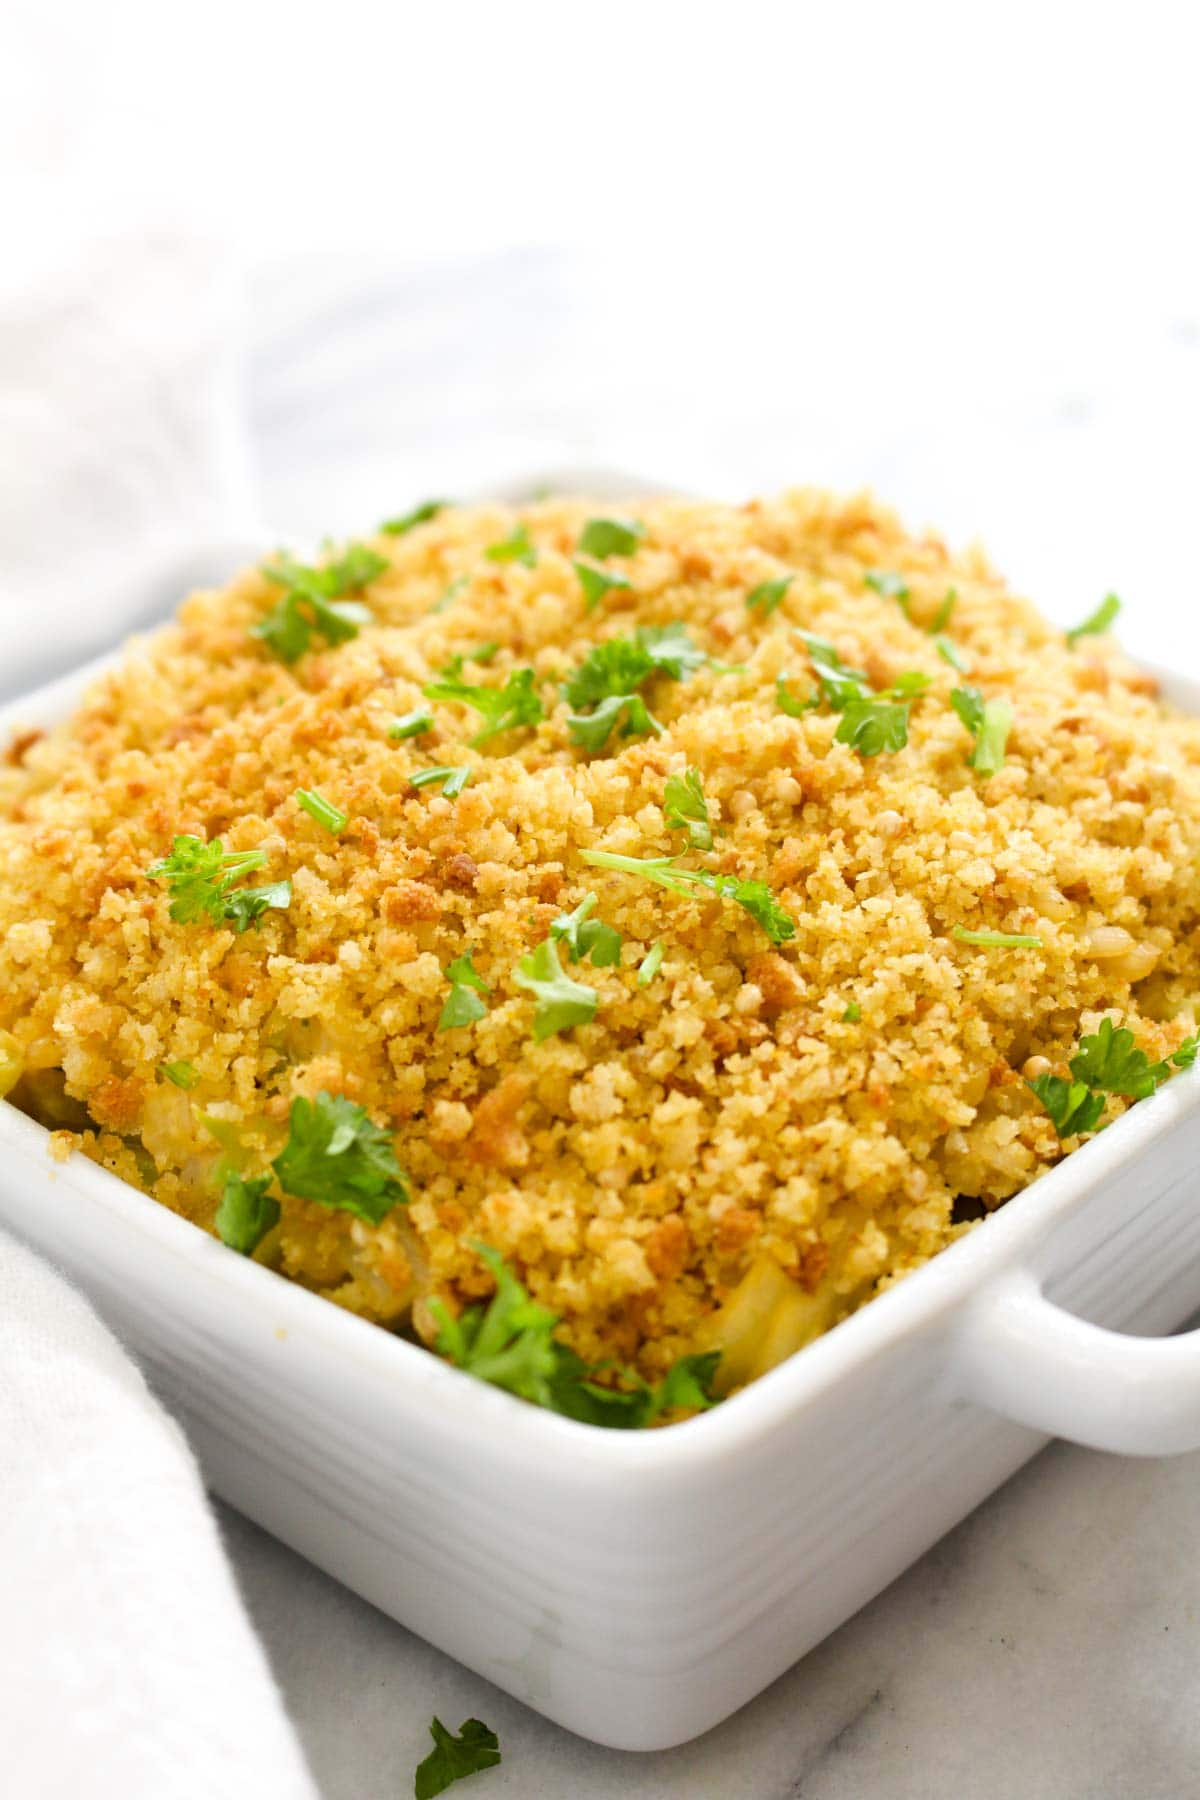 This Cheesy Broccoli Rice Casserole is a hearty and creamy dish that satisfies that itch for comfort food while being completely healthy, gluten-free, and vegan! This quick dish only takes 30 minutes to make, including the time it takes to whip up the cheese sauce. | CatchingSeeds.com